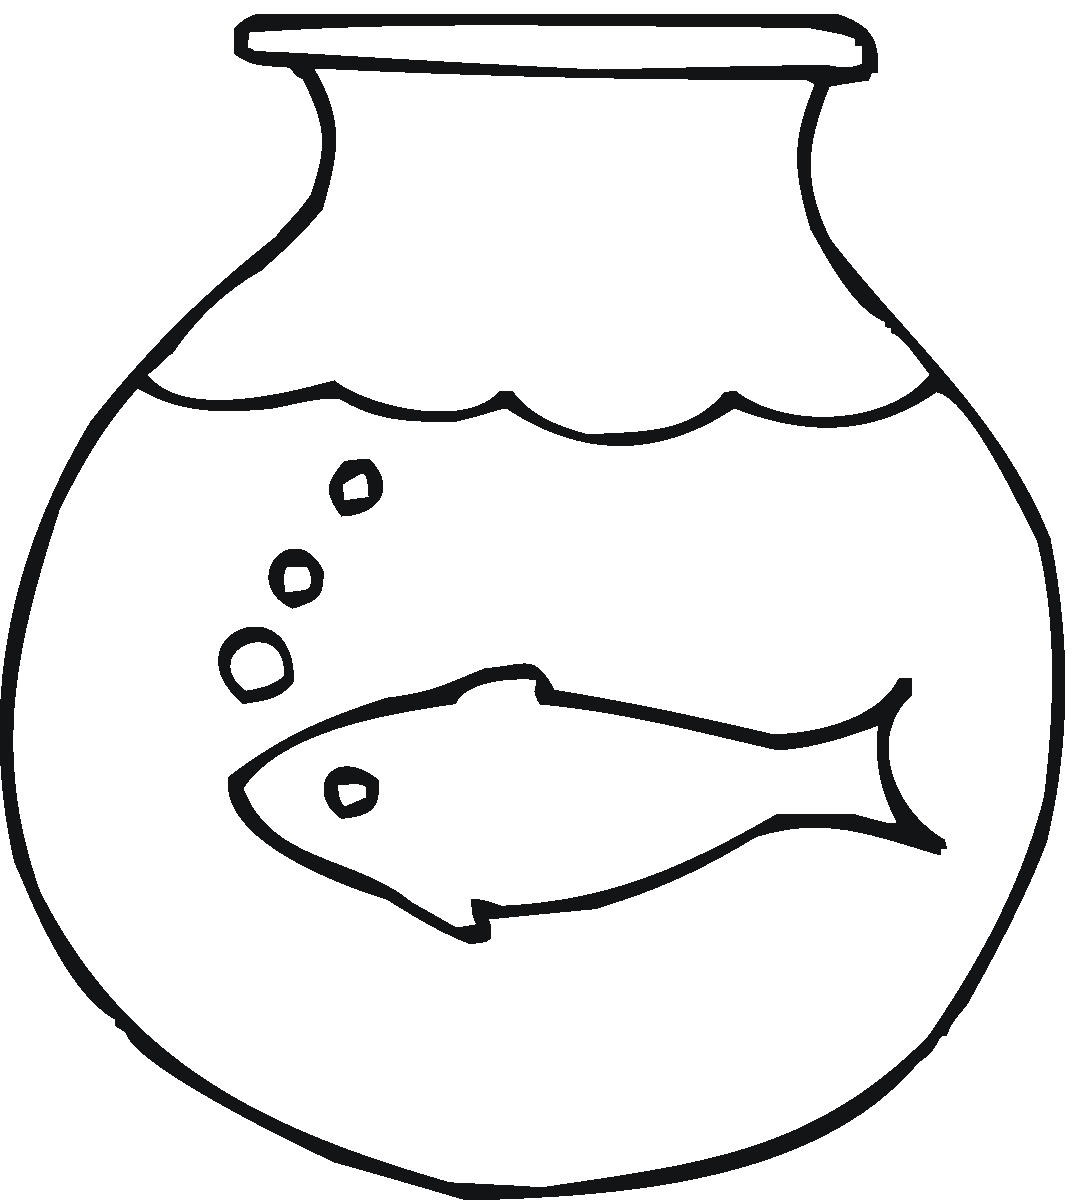 Fish bowl clipart black and white free 3